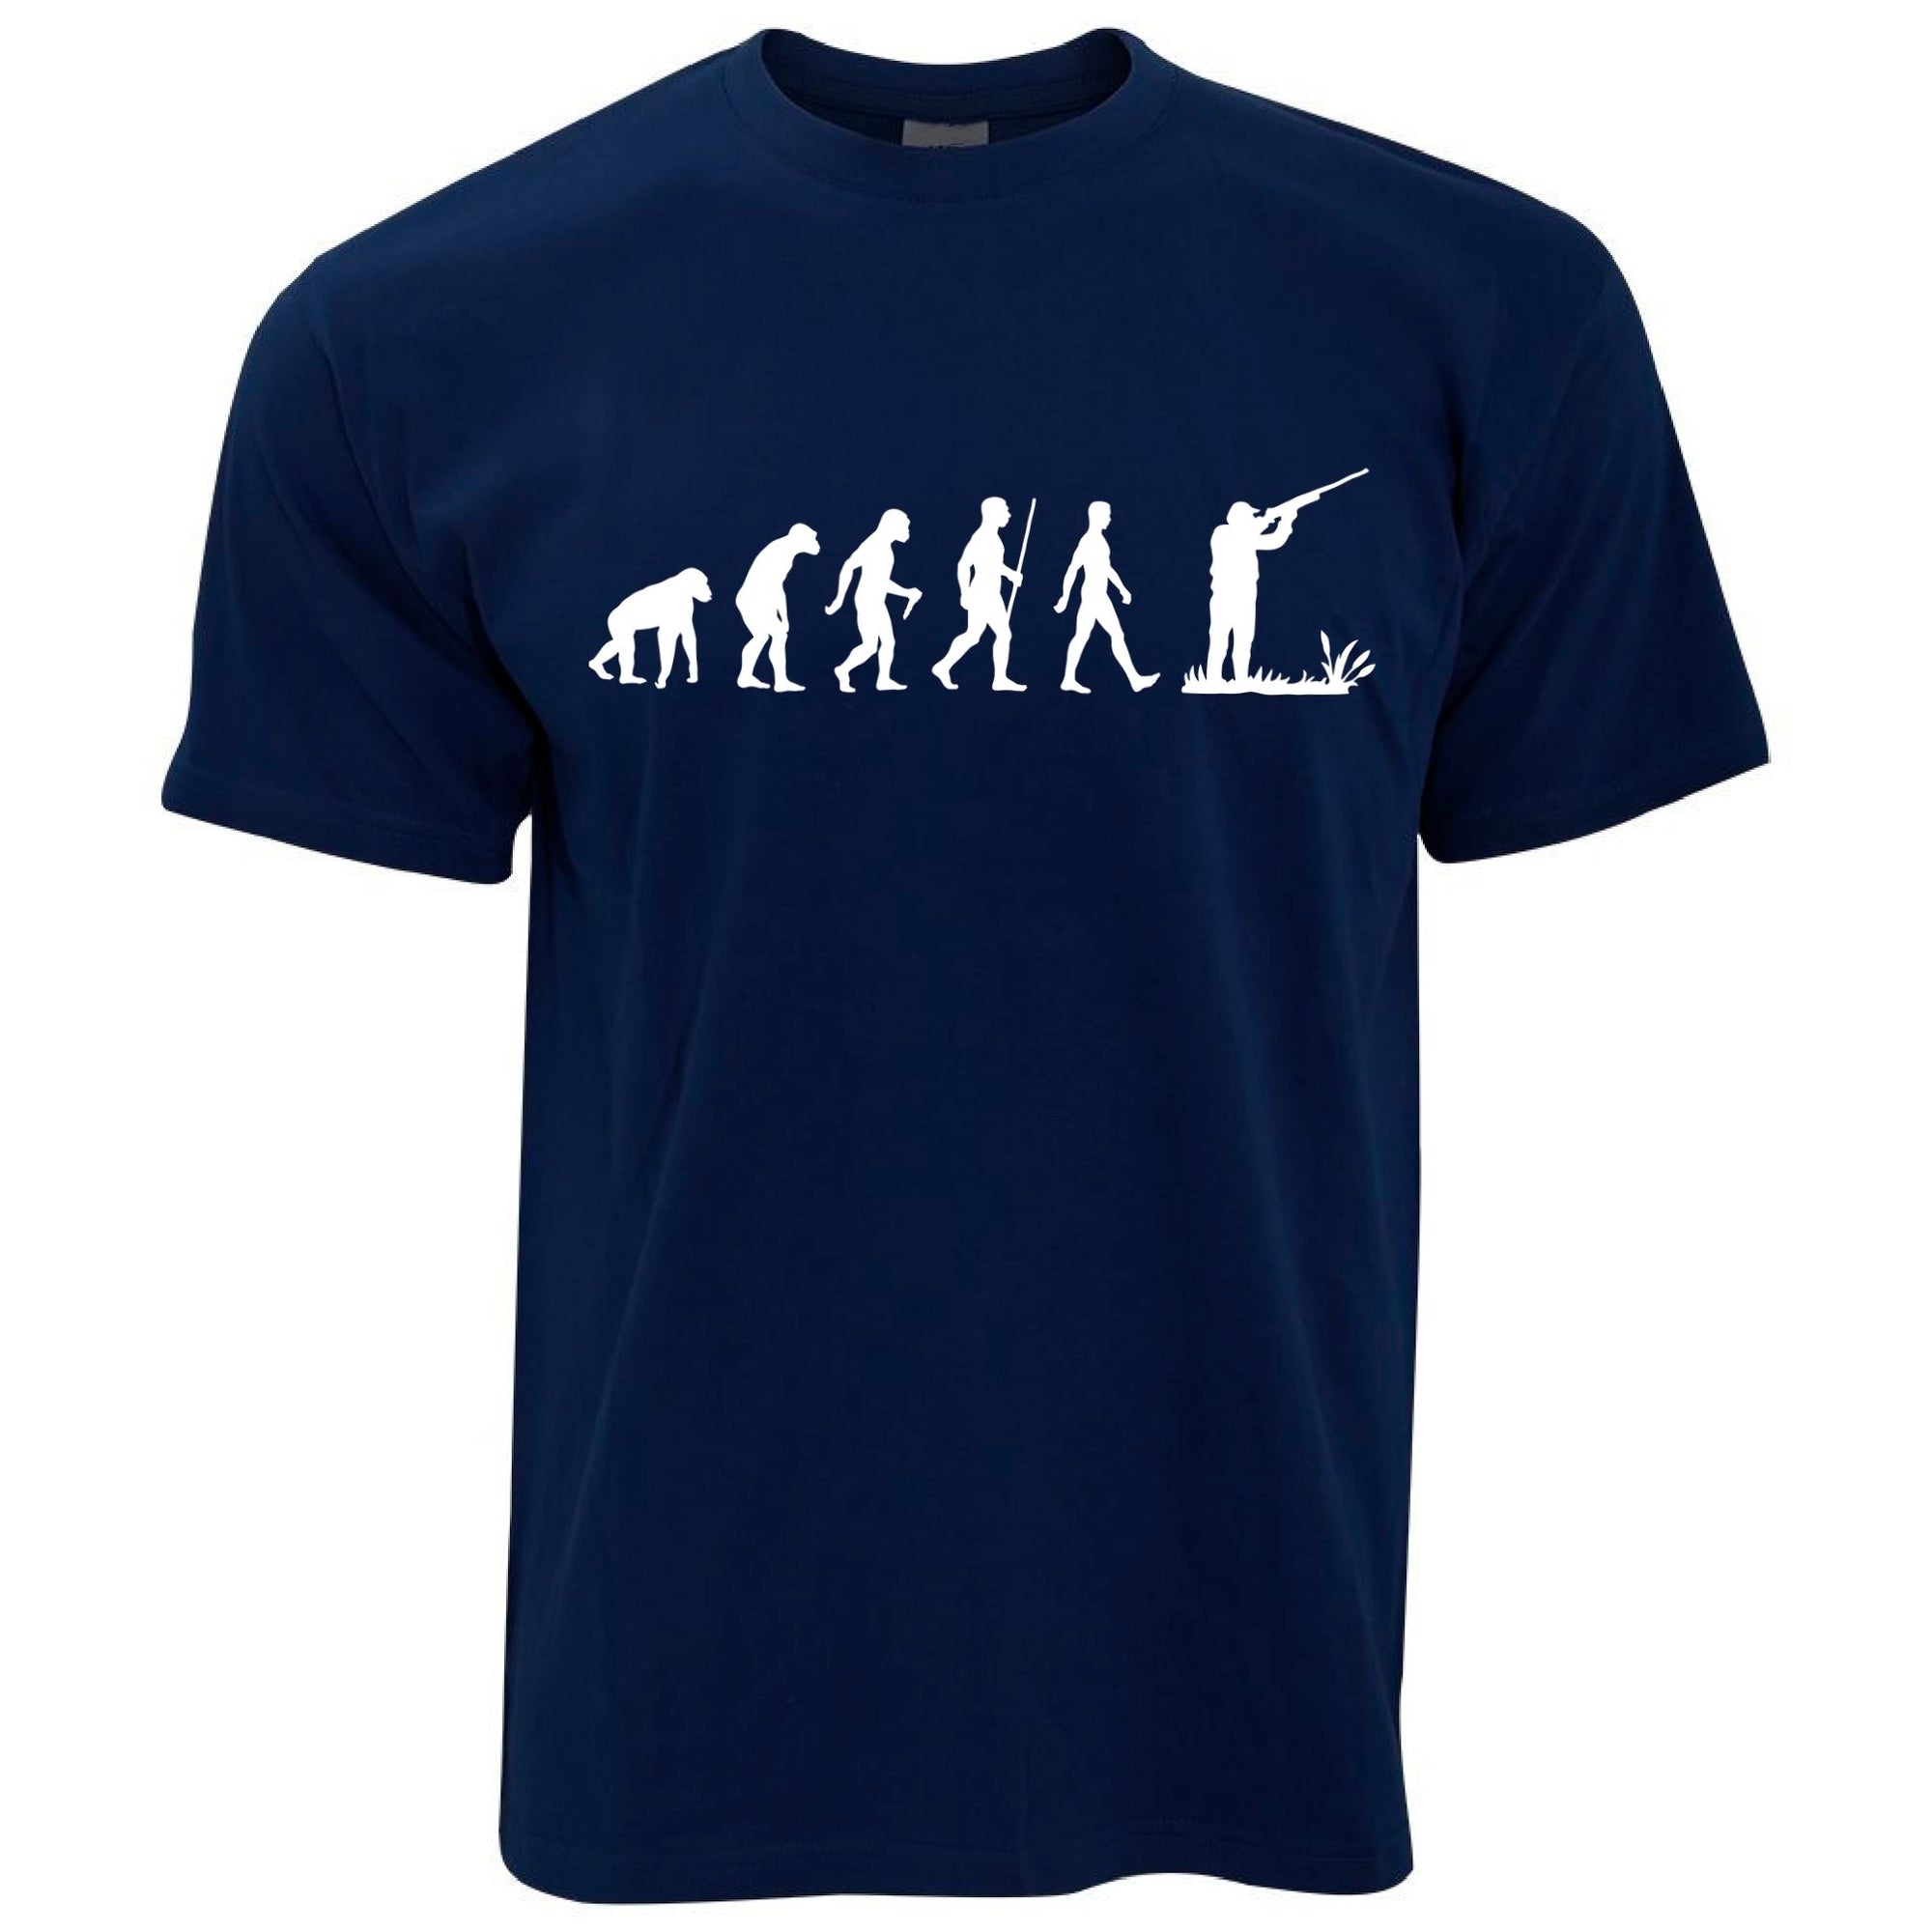 Novelty T Shirt The Evolution of Clay Pigeon Shooting